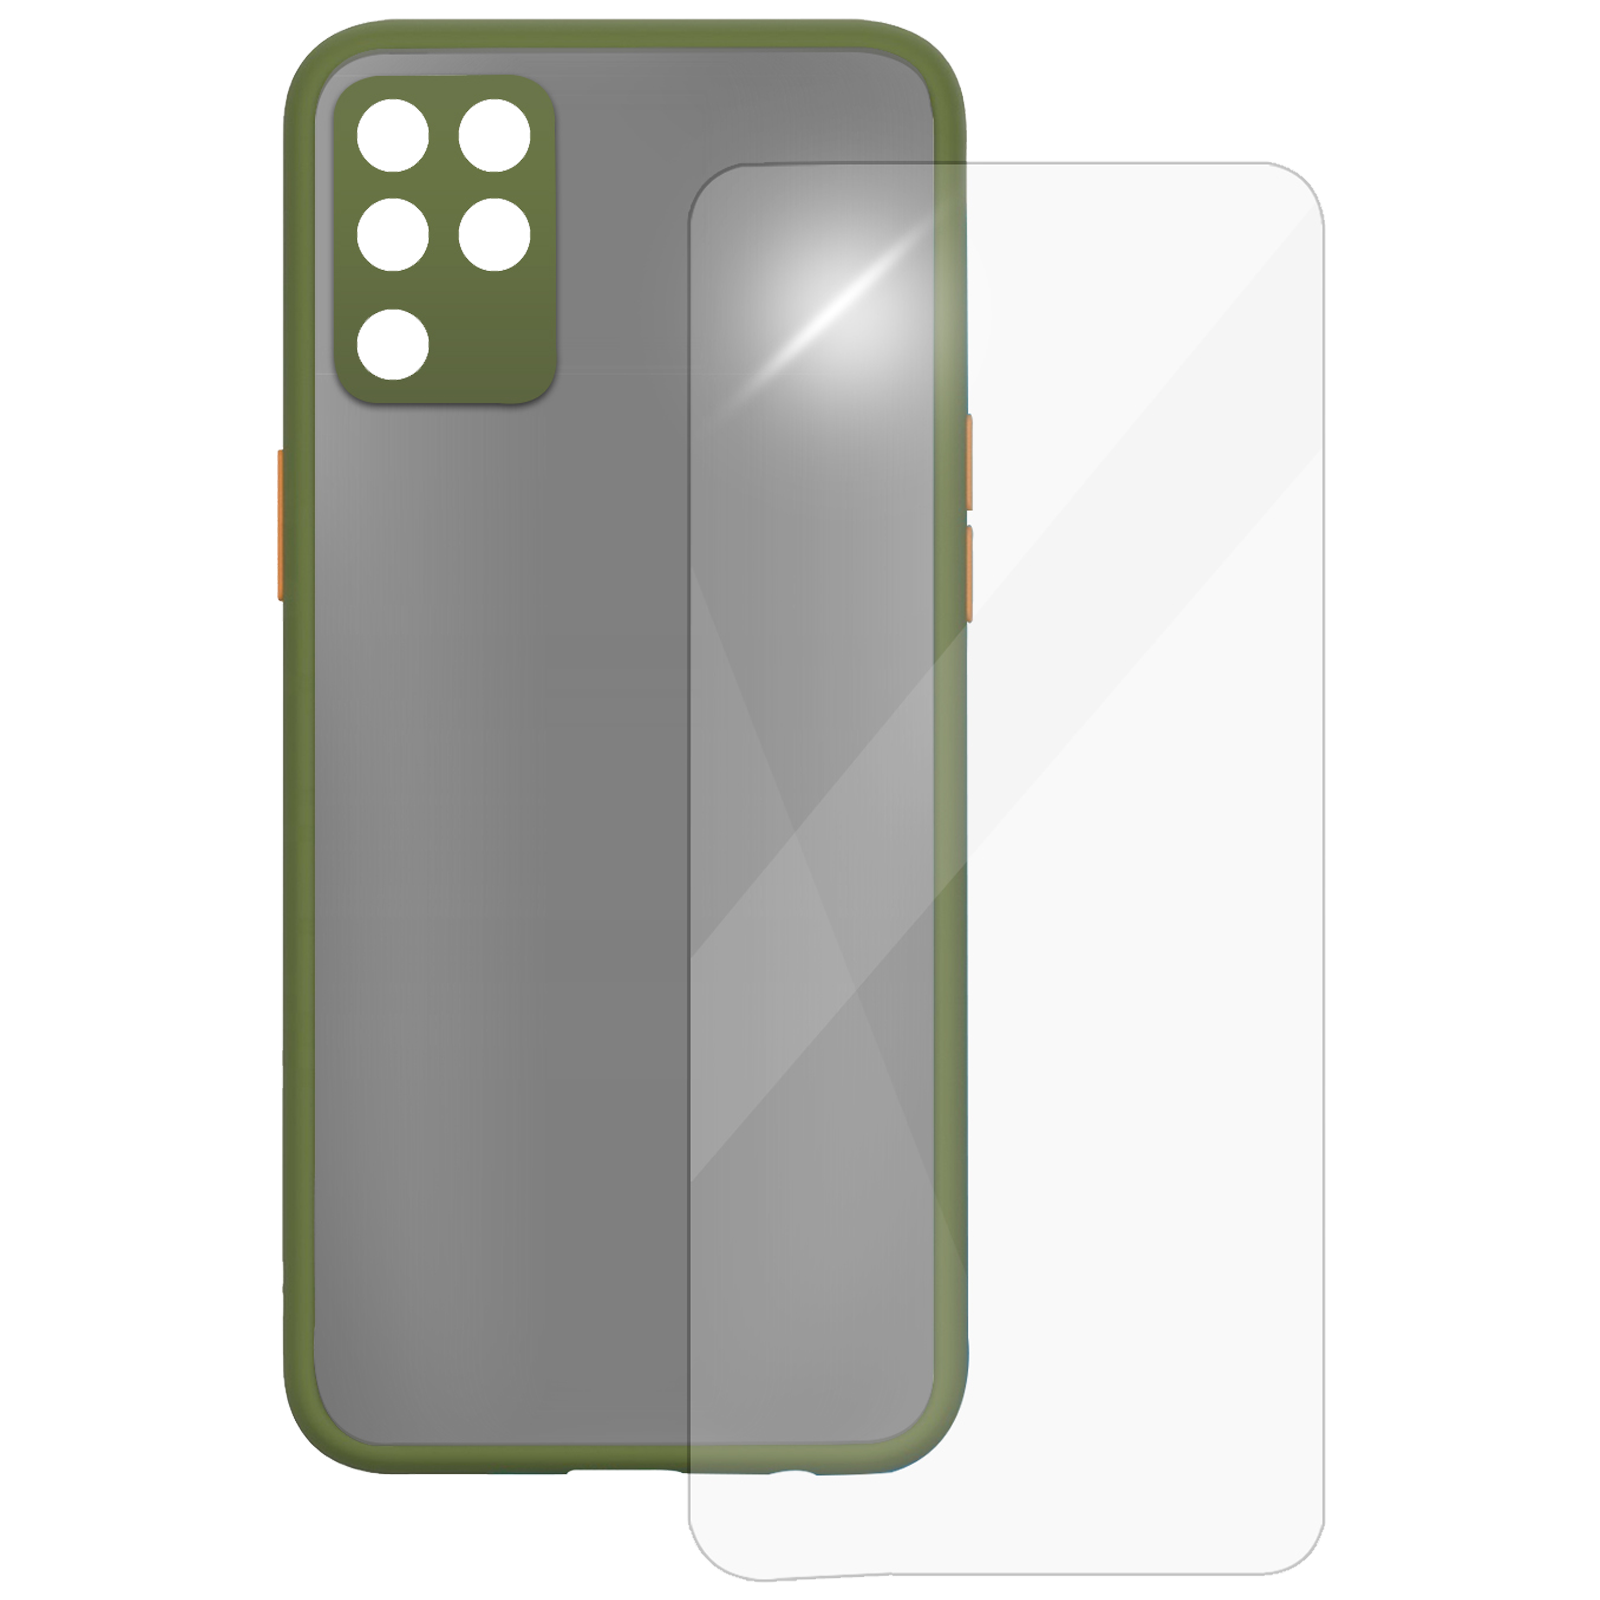 Arrow Camera Duplex Back Case and Screen Protector Bundle For Oppo F19 Pro (Ultra Transparent Visibility, AR-987, Light Green)_1